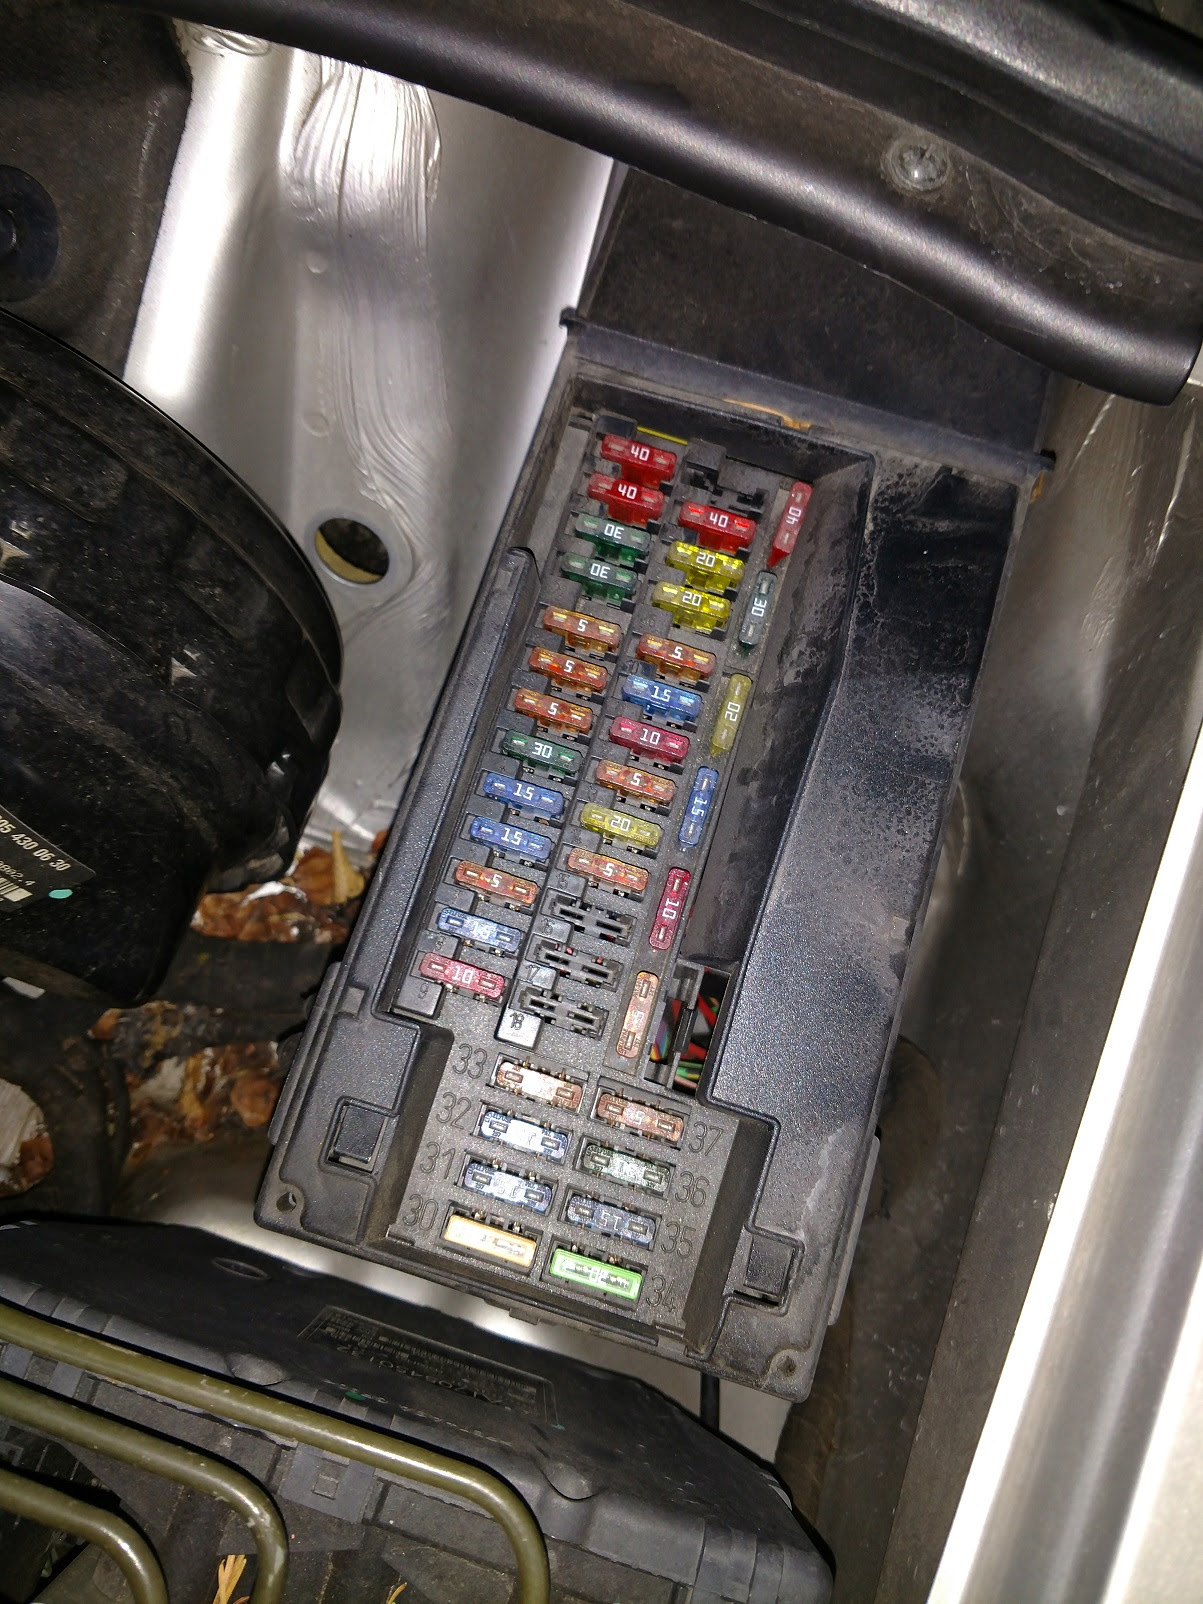 P0410 Code Help Fuse And Relay Locations For 2001 Slk320 Mercedes Slk World